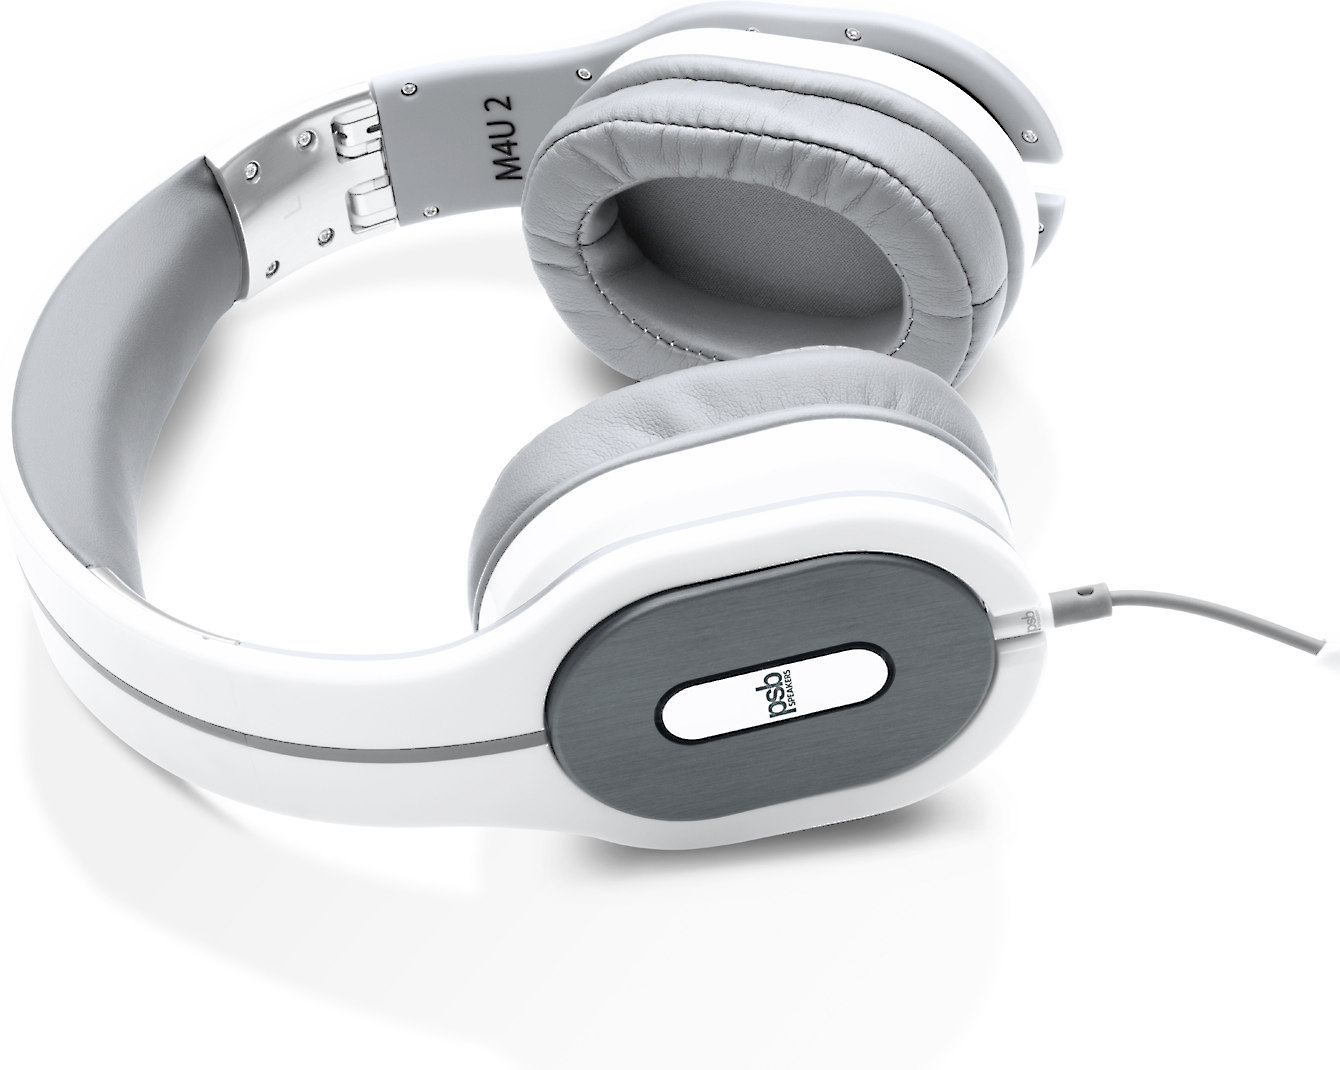 e6129b8d489 PSB M4U 2 (White) Noise-canceling headphones with in-line microphone and  remote at Crutchfield.com